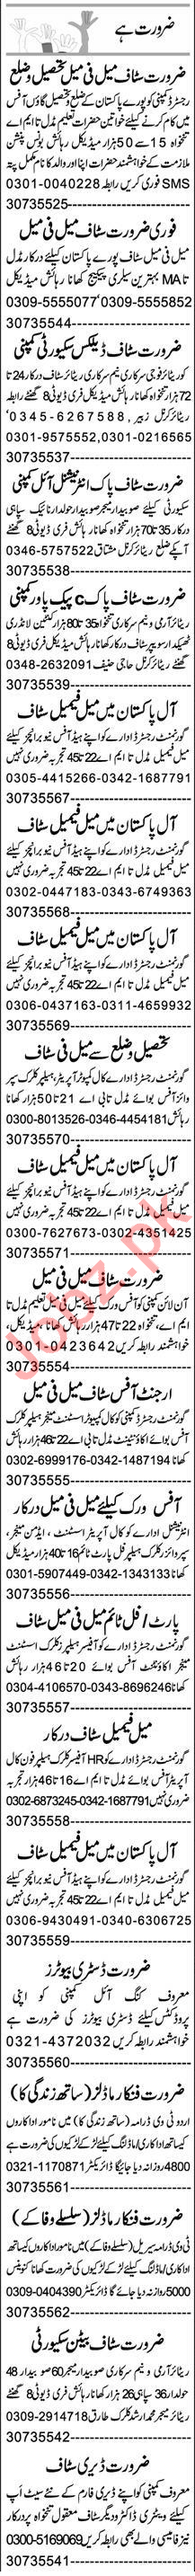 Recovery Officer & Pharmacist Jobs 2020 in Lahore